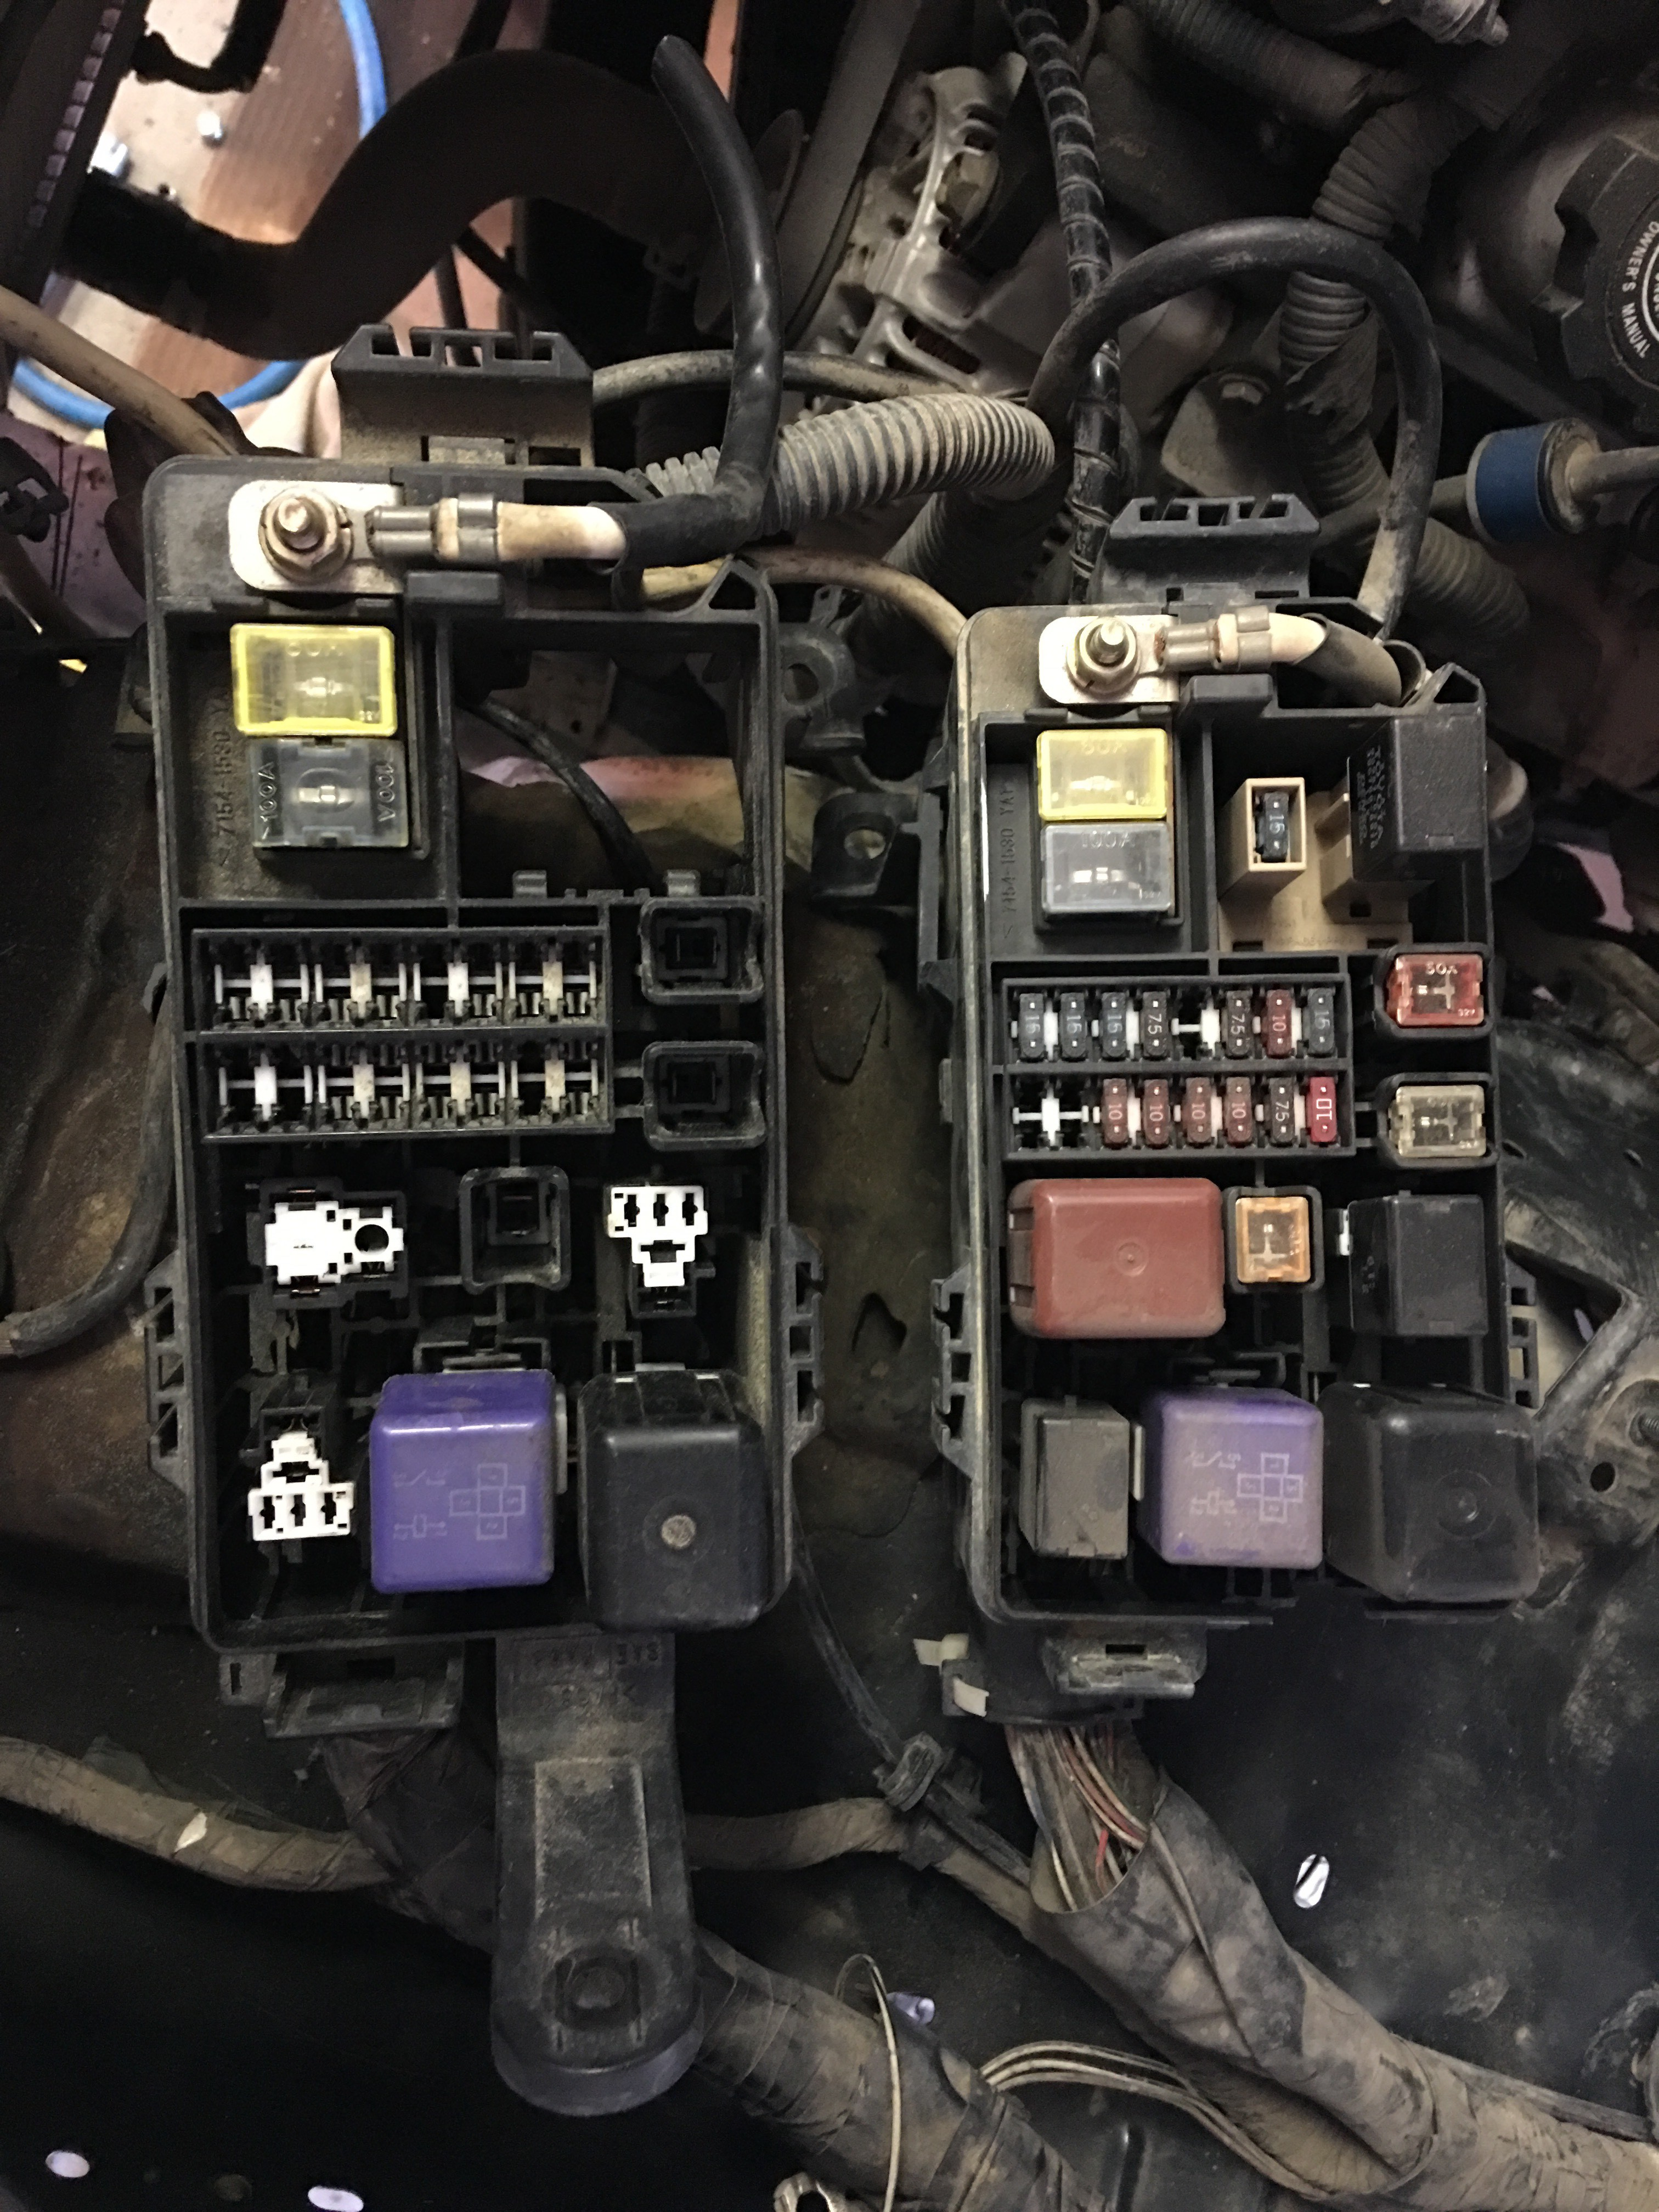 Fuse Box Help Toyota 4runner Forum Largest 02 Before I Start Sawing And Jb Welding Mounts Anyone Have Any Good Ideas To Remount The New Pictures For Detail